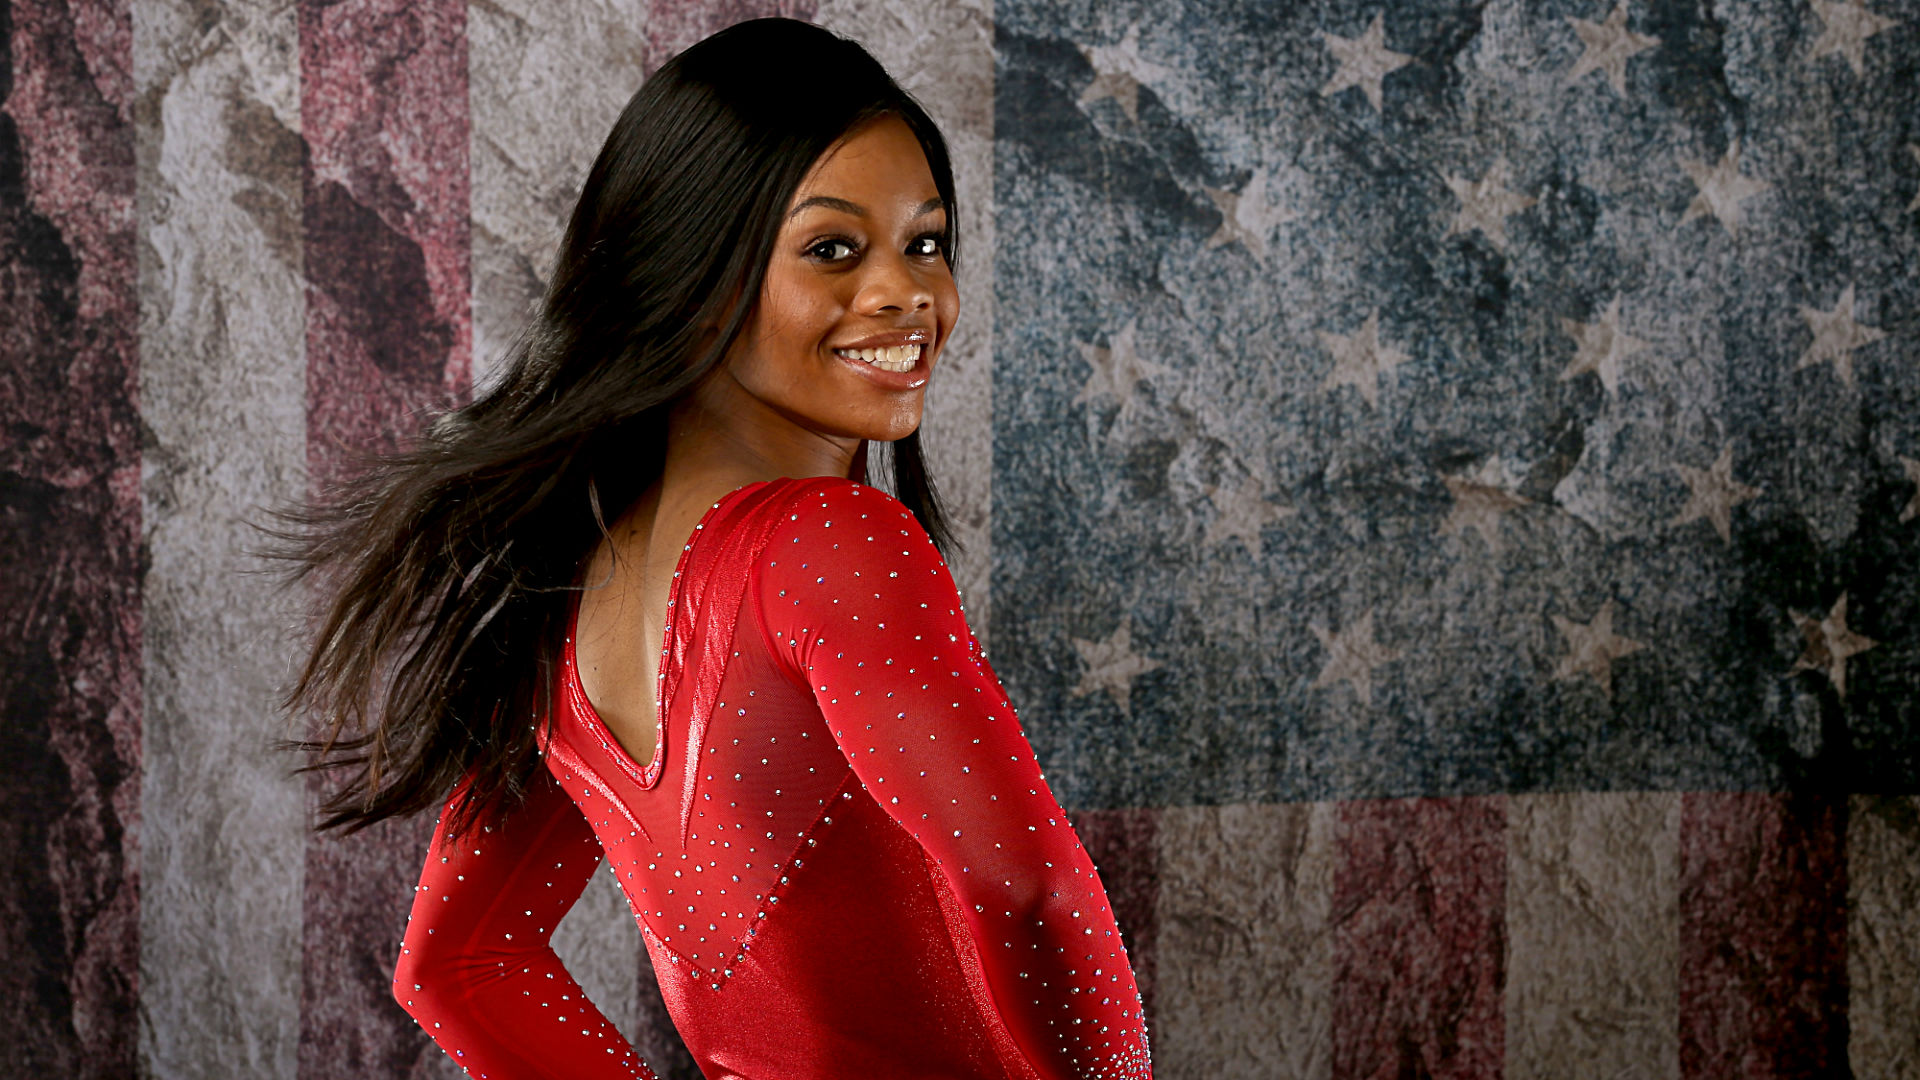 Gabby Douglas Not Worried About Zika At Olympics This Is My Shot